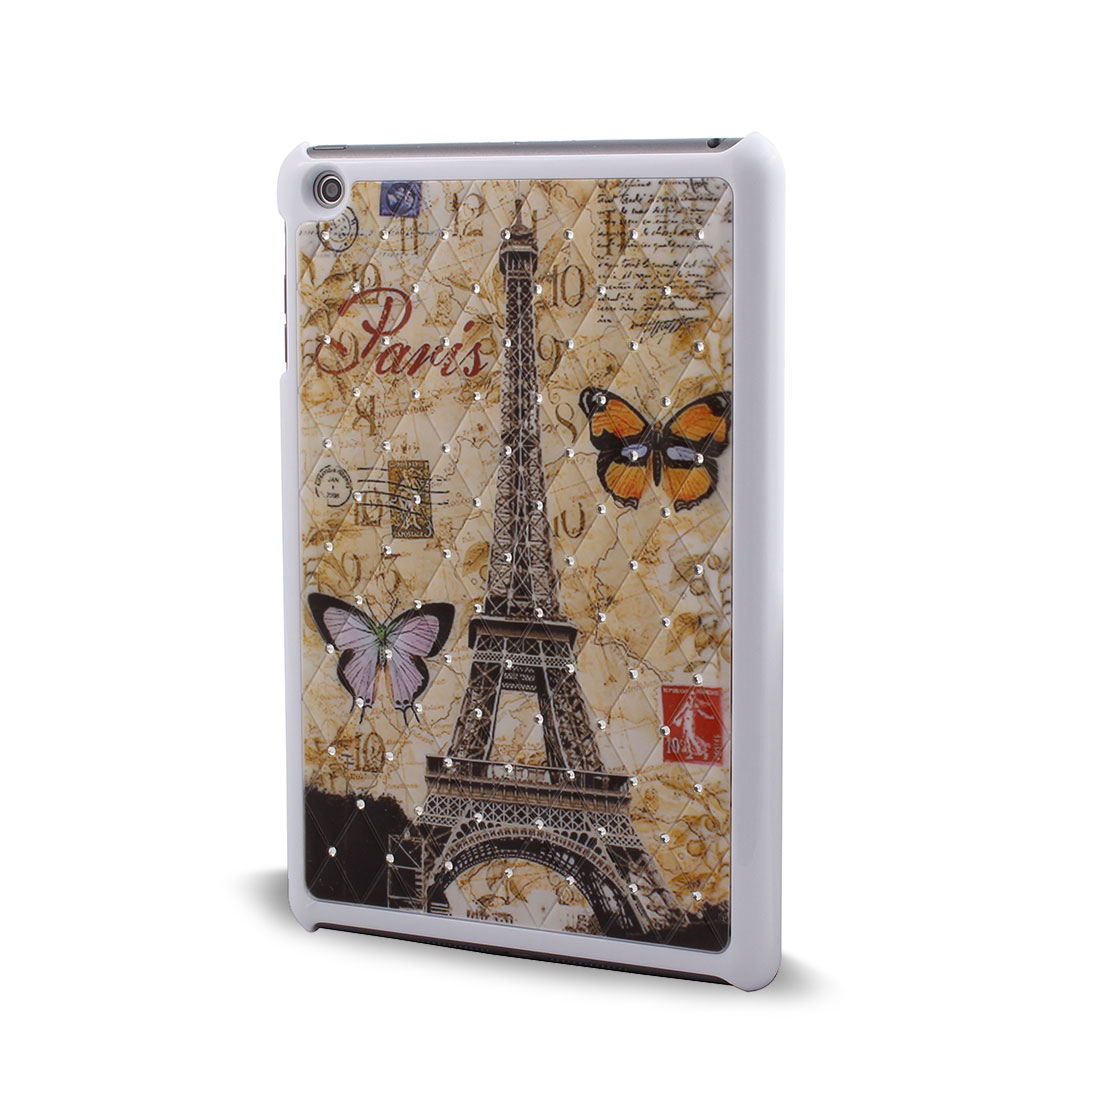 Plastic Eiffel Towel Pattern Back Protect Shell Case Cover for Apple iPad Mini 1/2/3